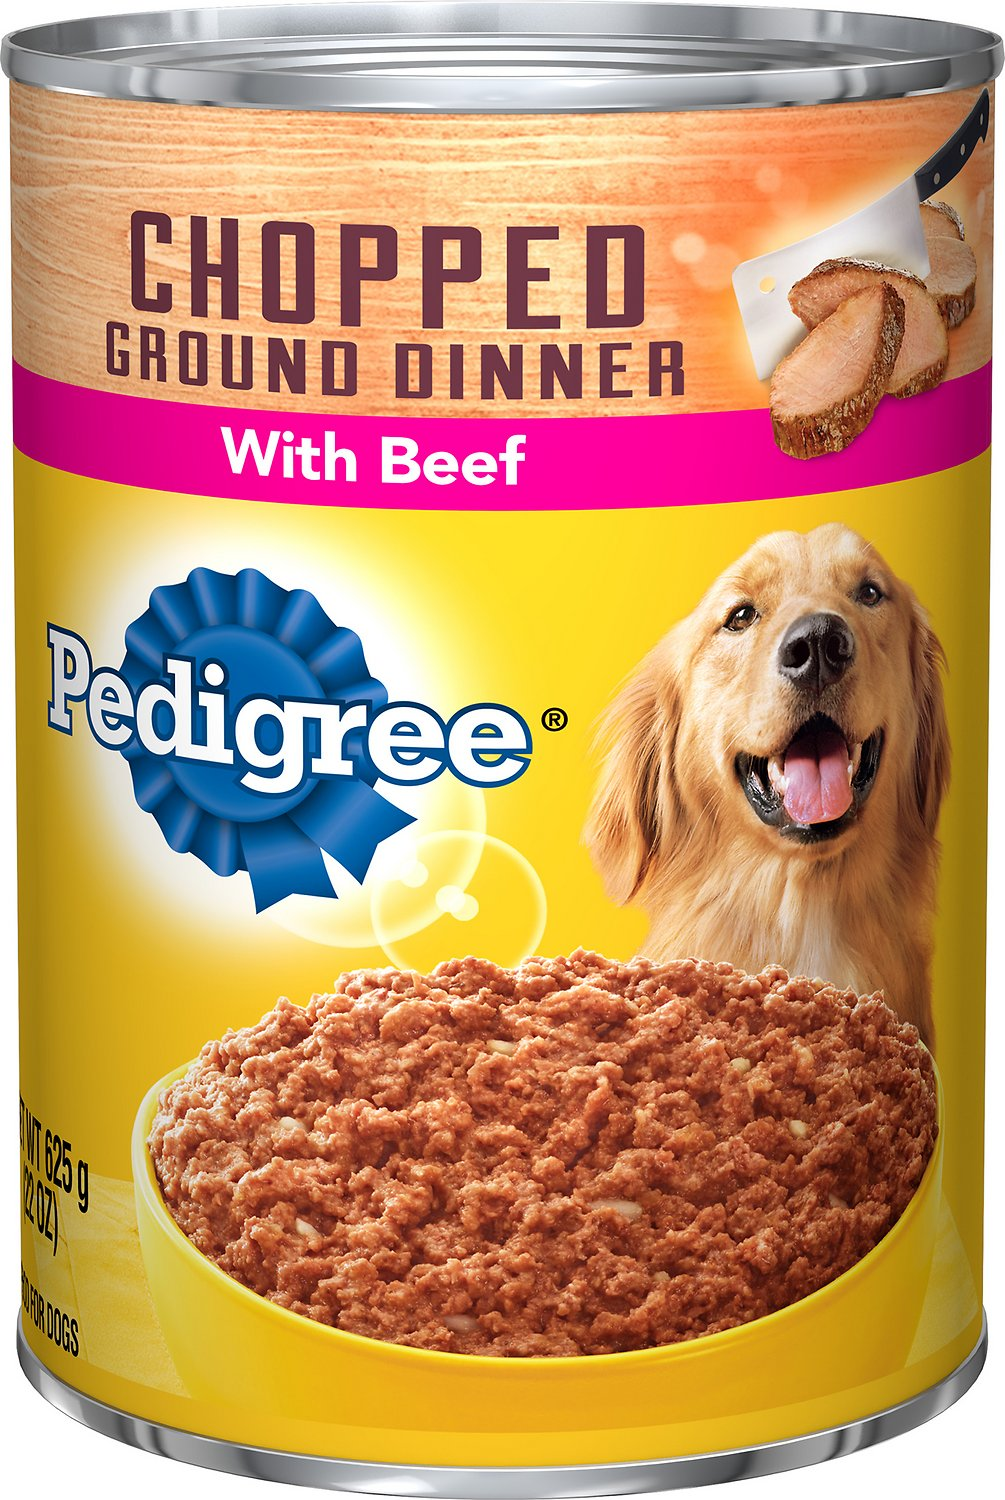 Pedegree Canned Dog Food